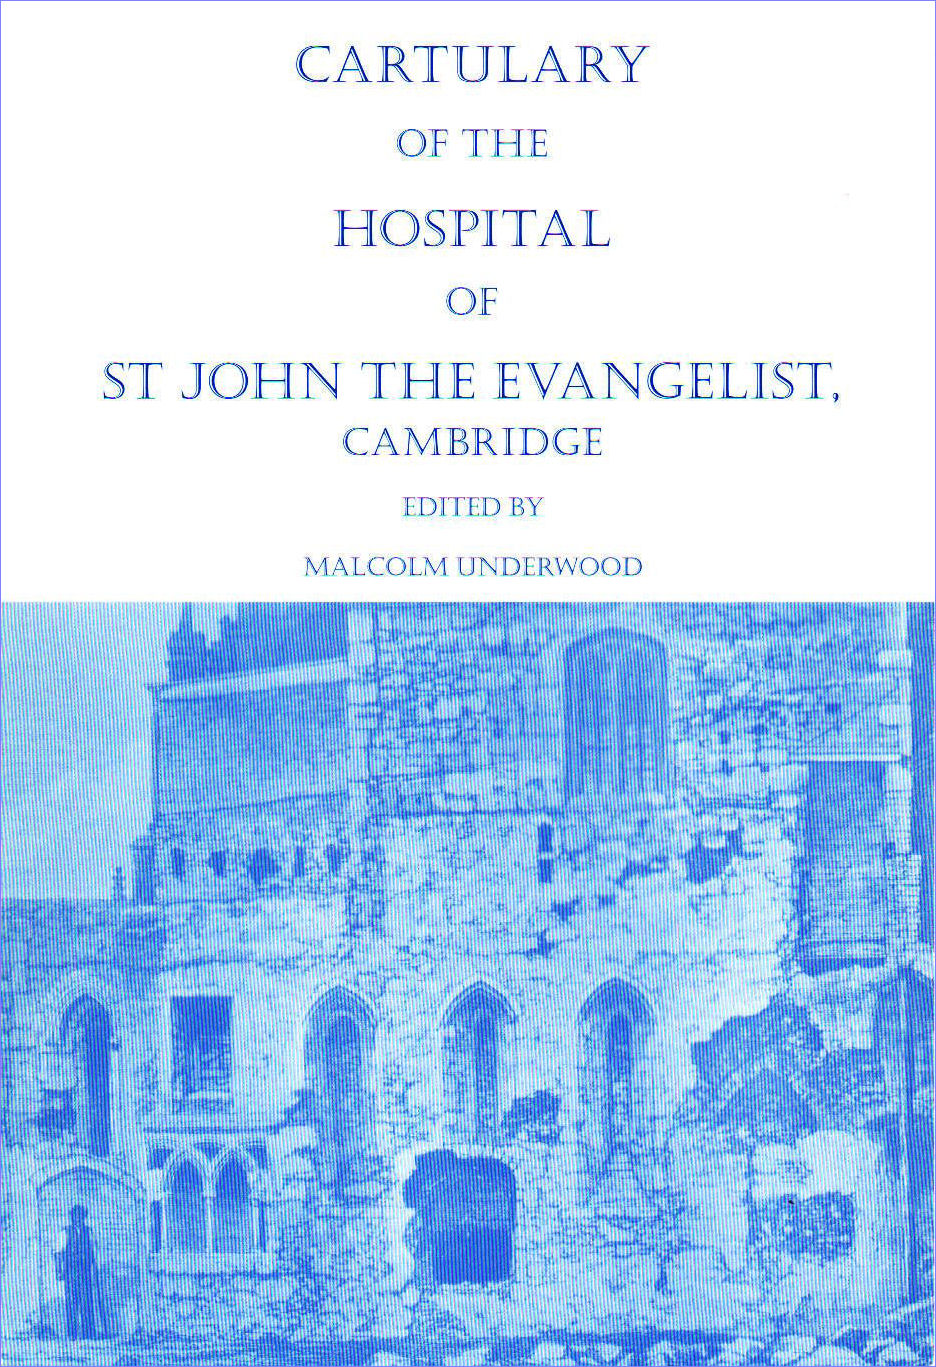 18. Cartulary of the Hospital of St John the Evangelist, Cambridge.  Edited by Malcolm Underwood